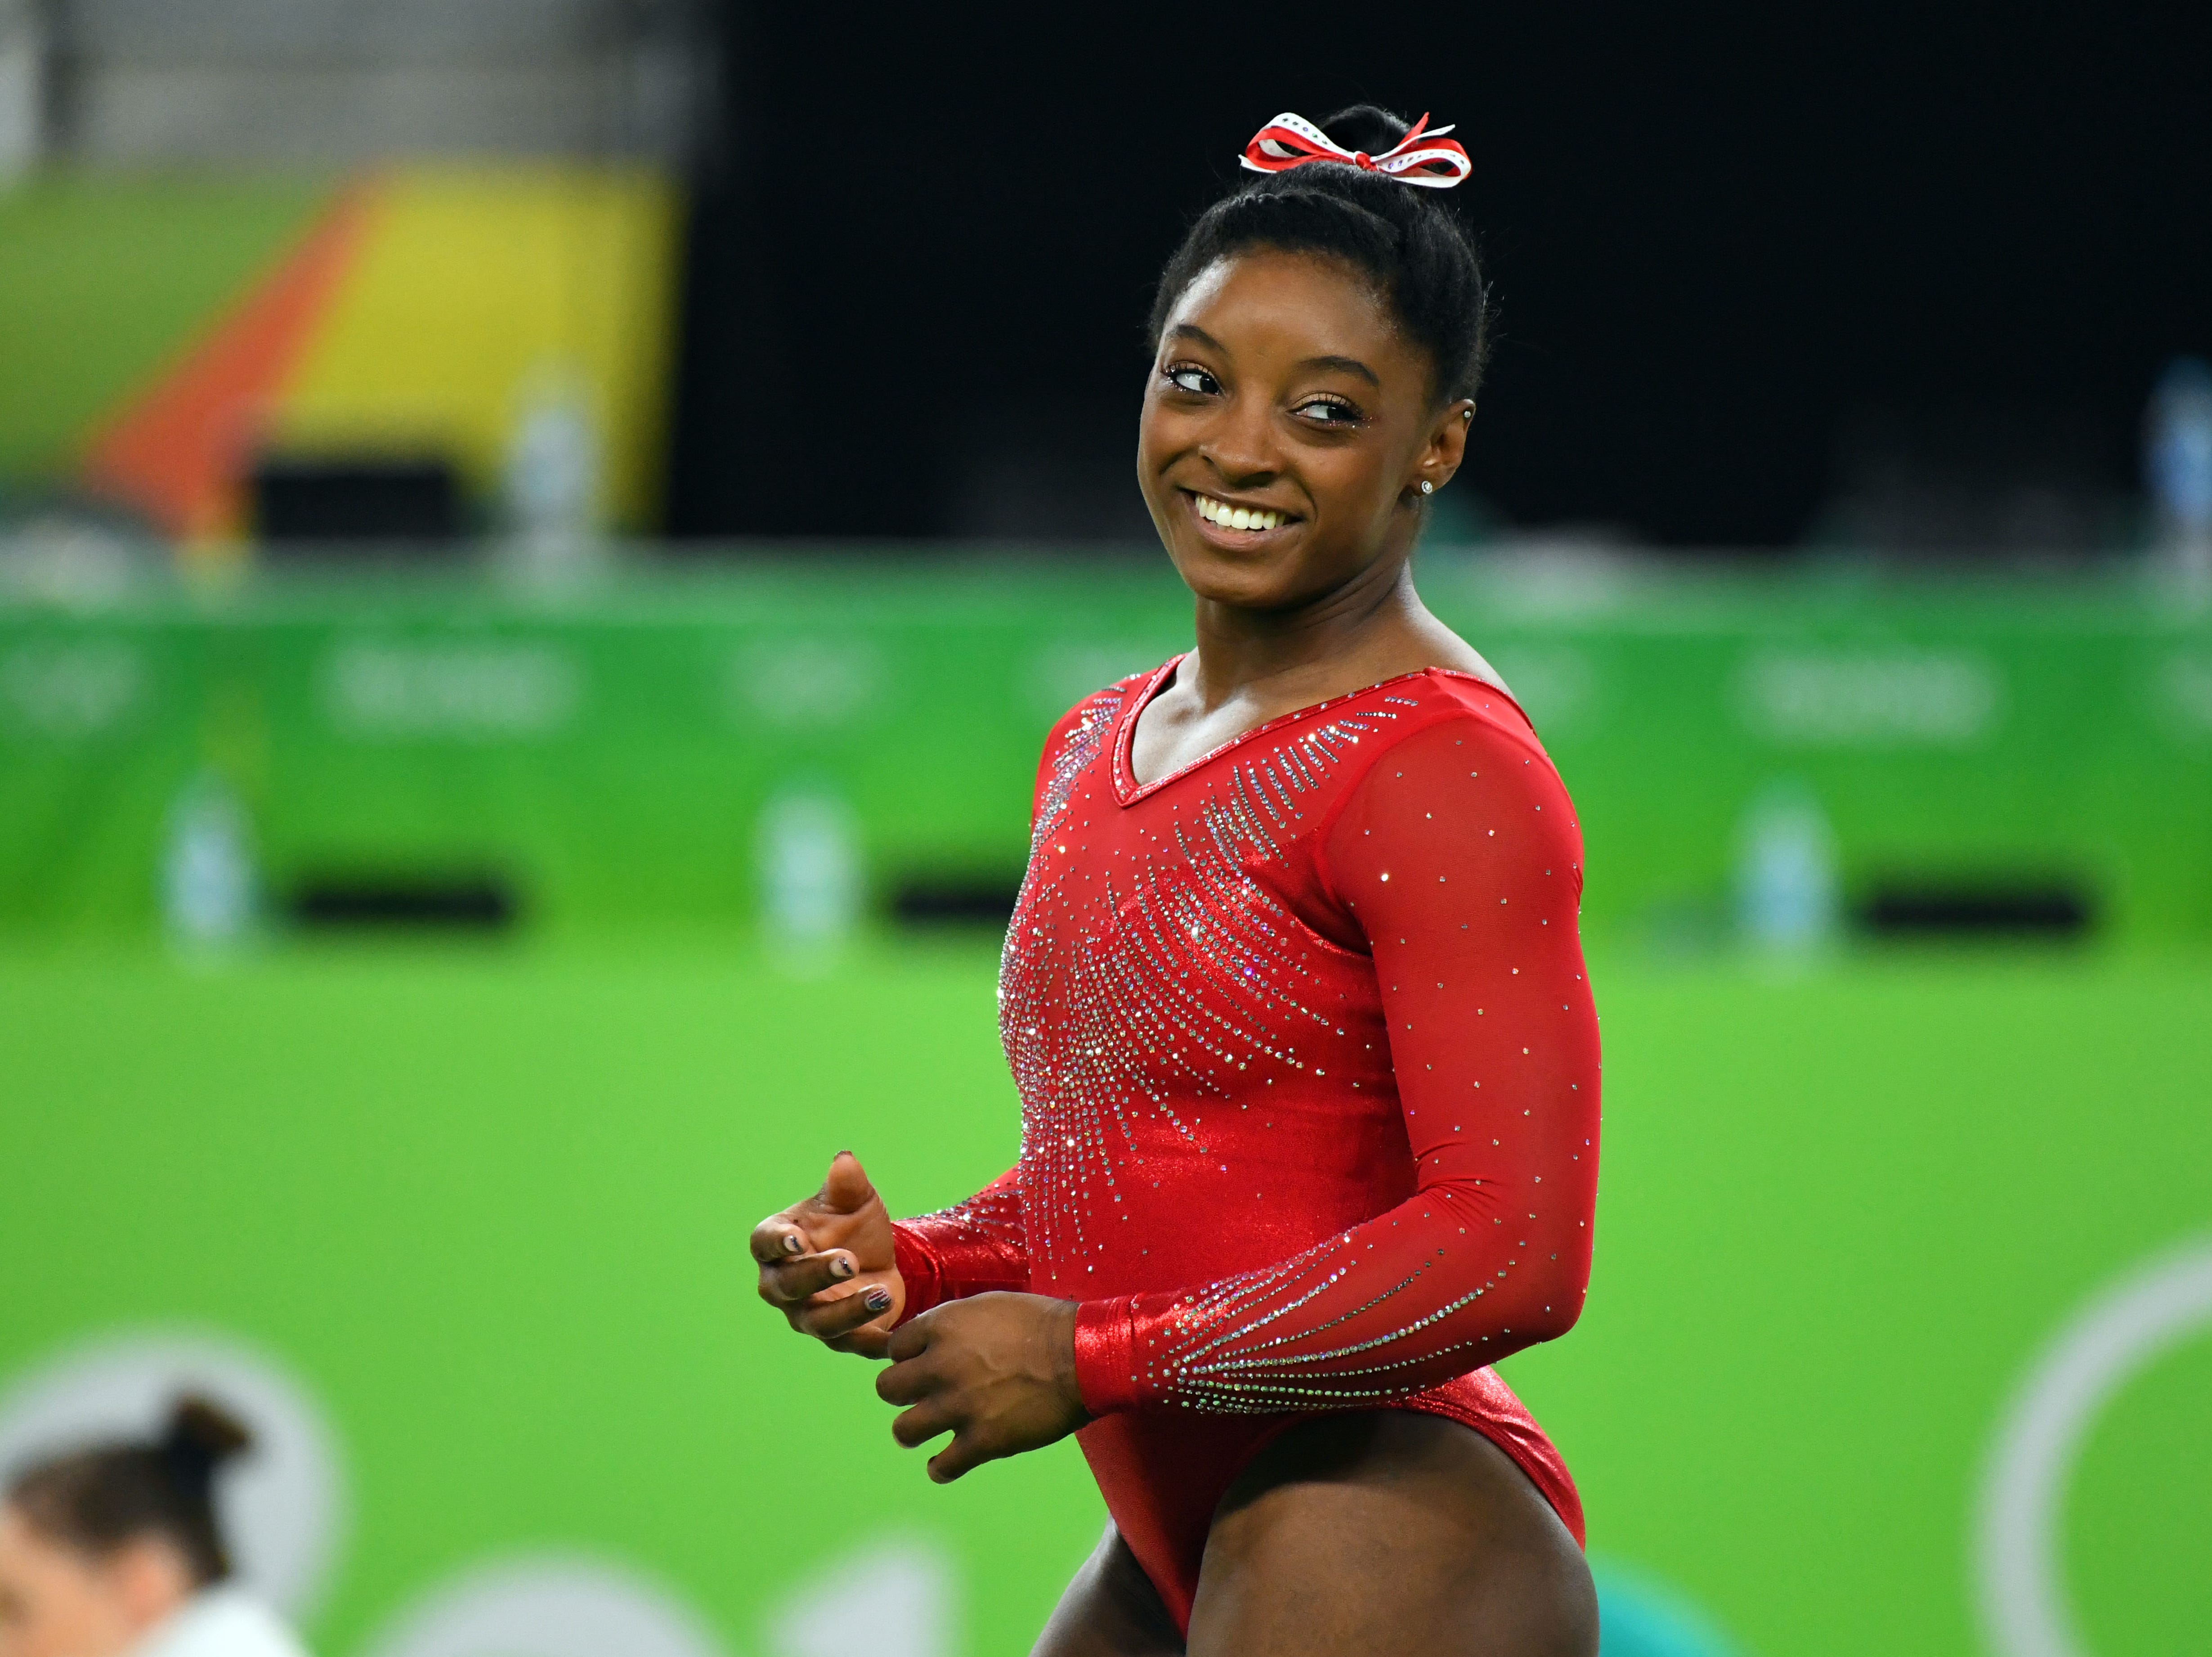 At the 2016 Olympics, Simone Biles won four gold medals and a bronze.